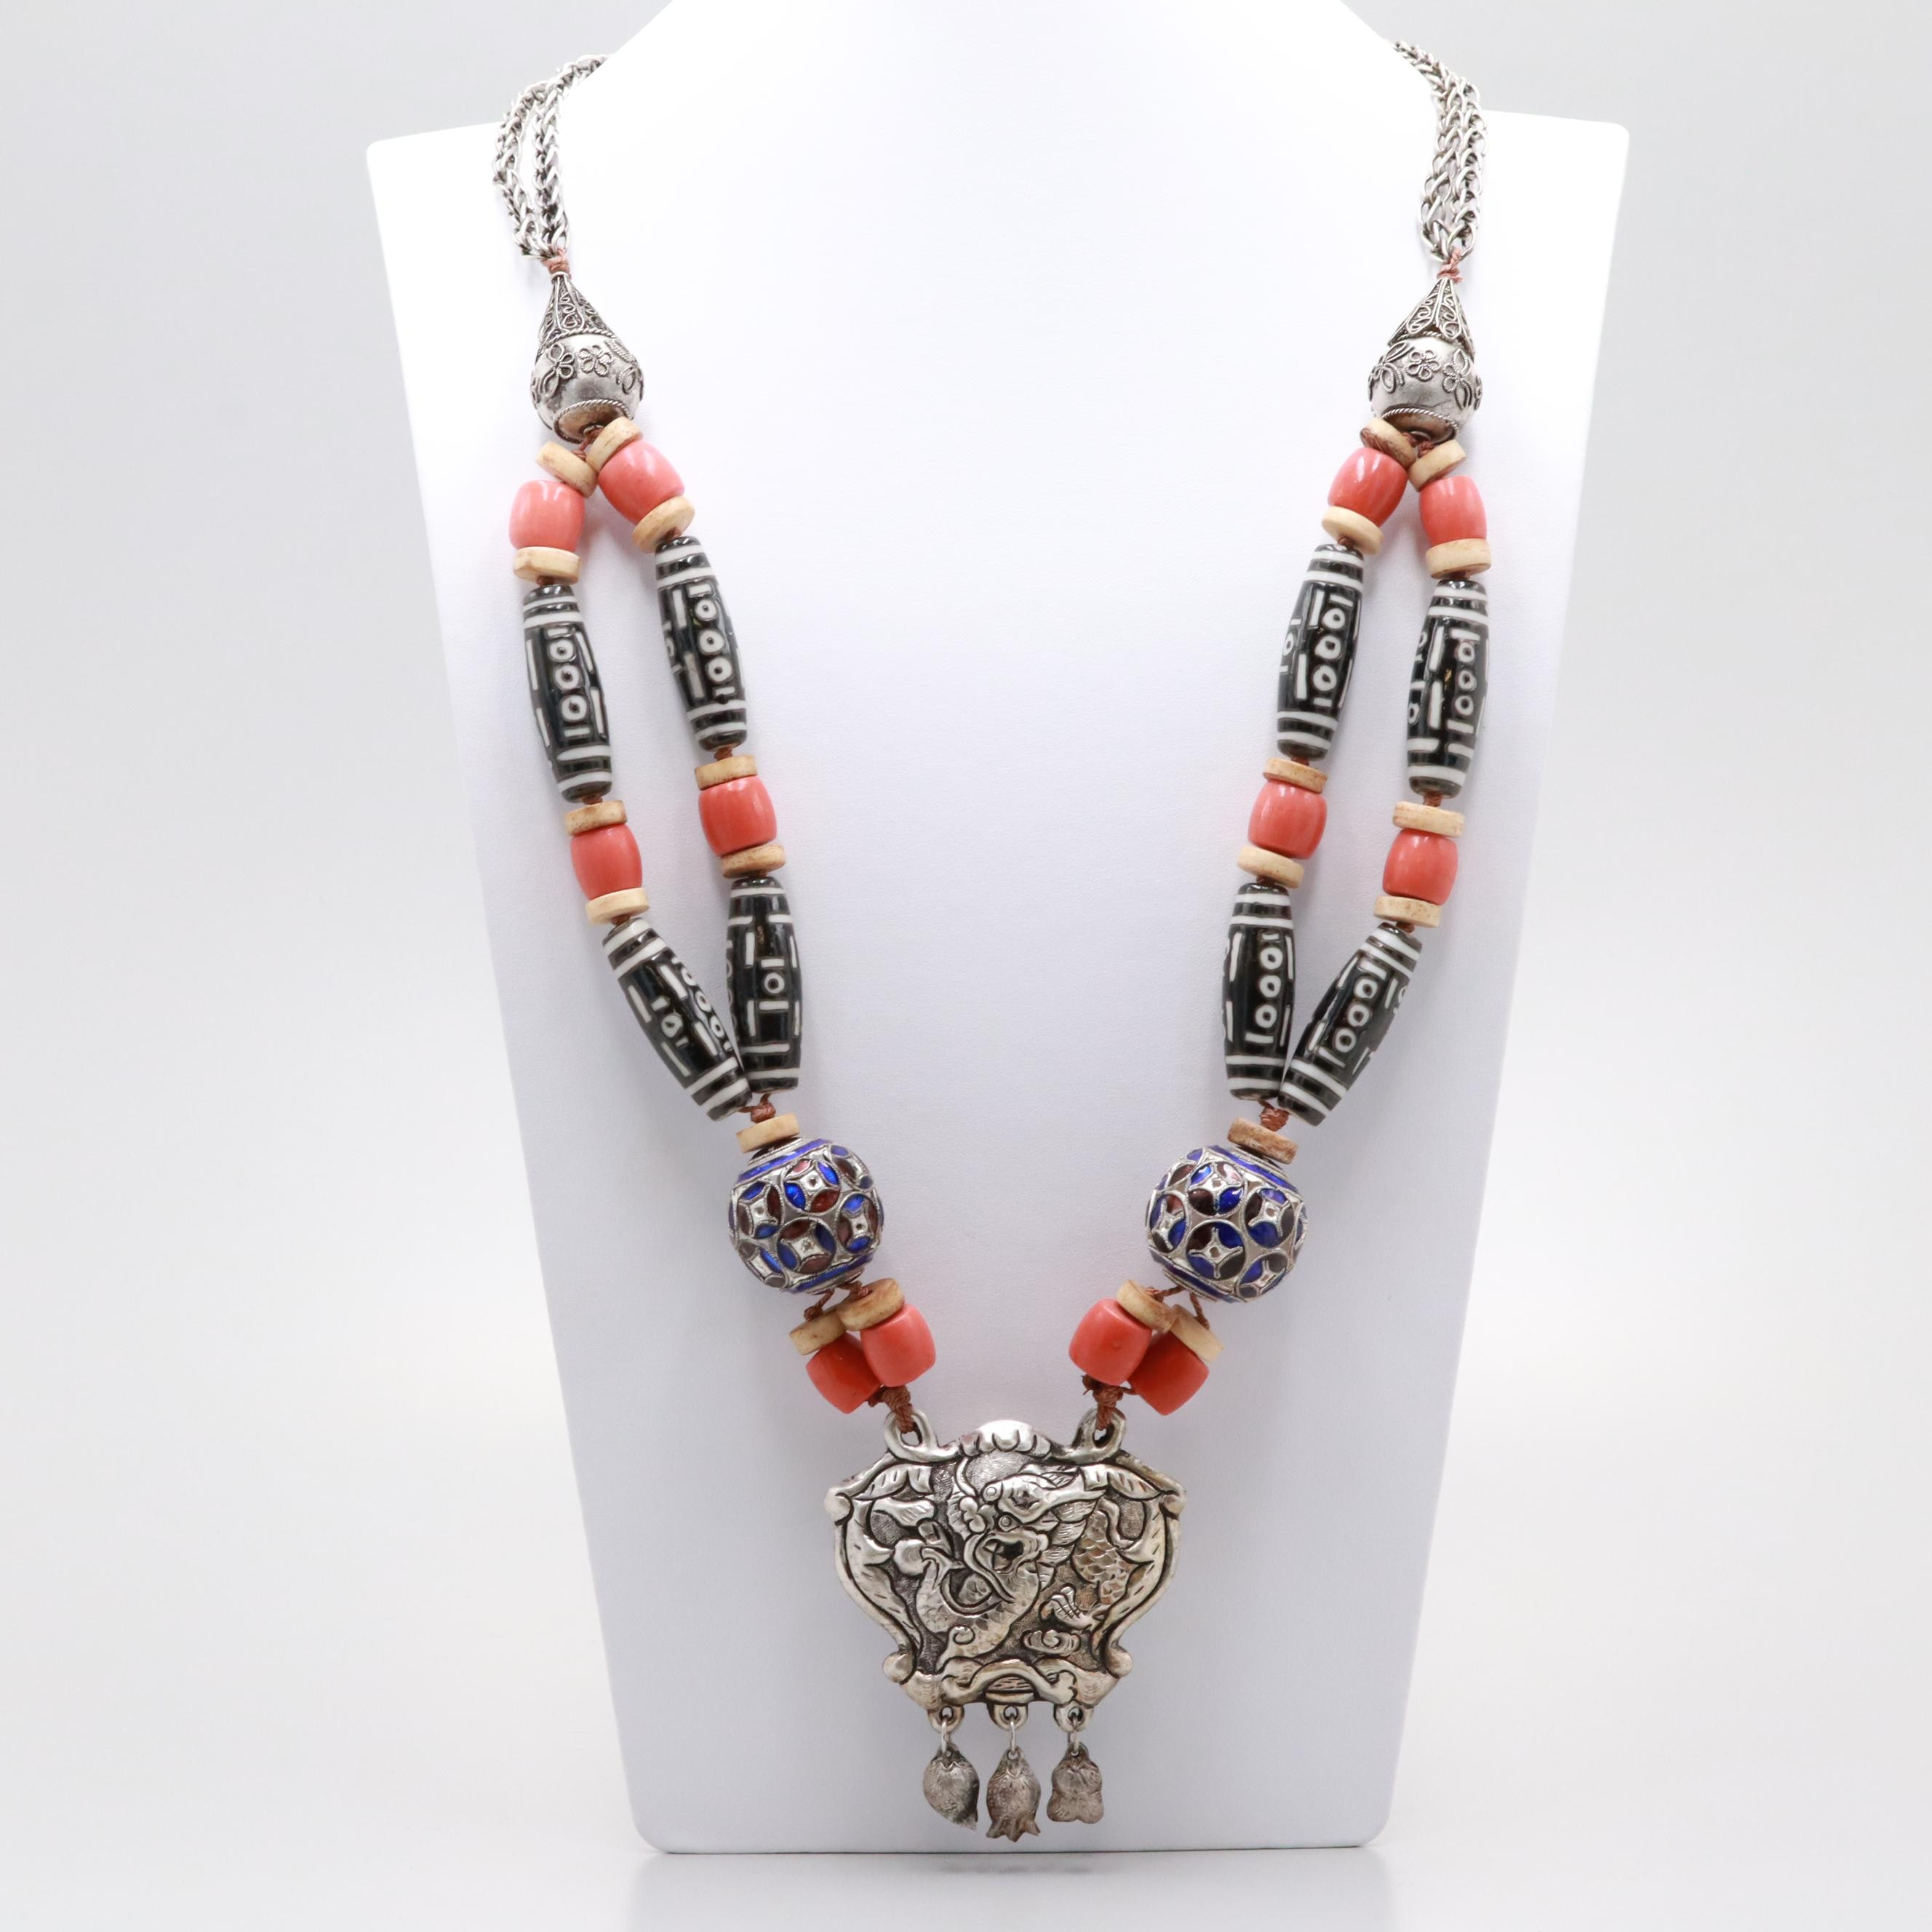 Beaded Bone and Glass Necklace with Dragon Motif Pendant and Dangles